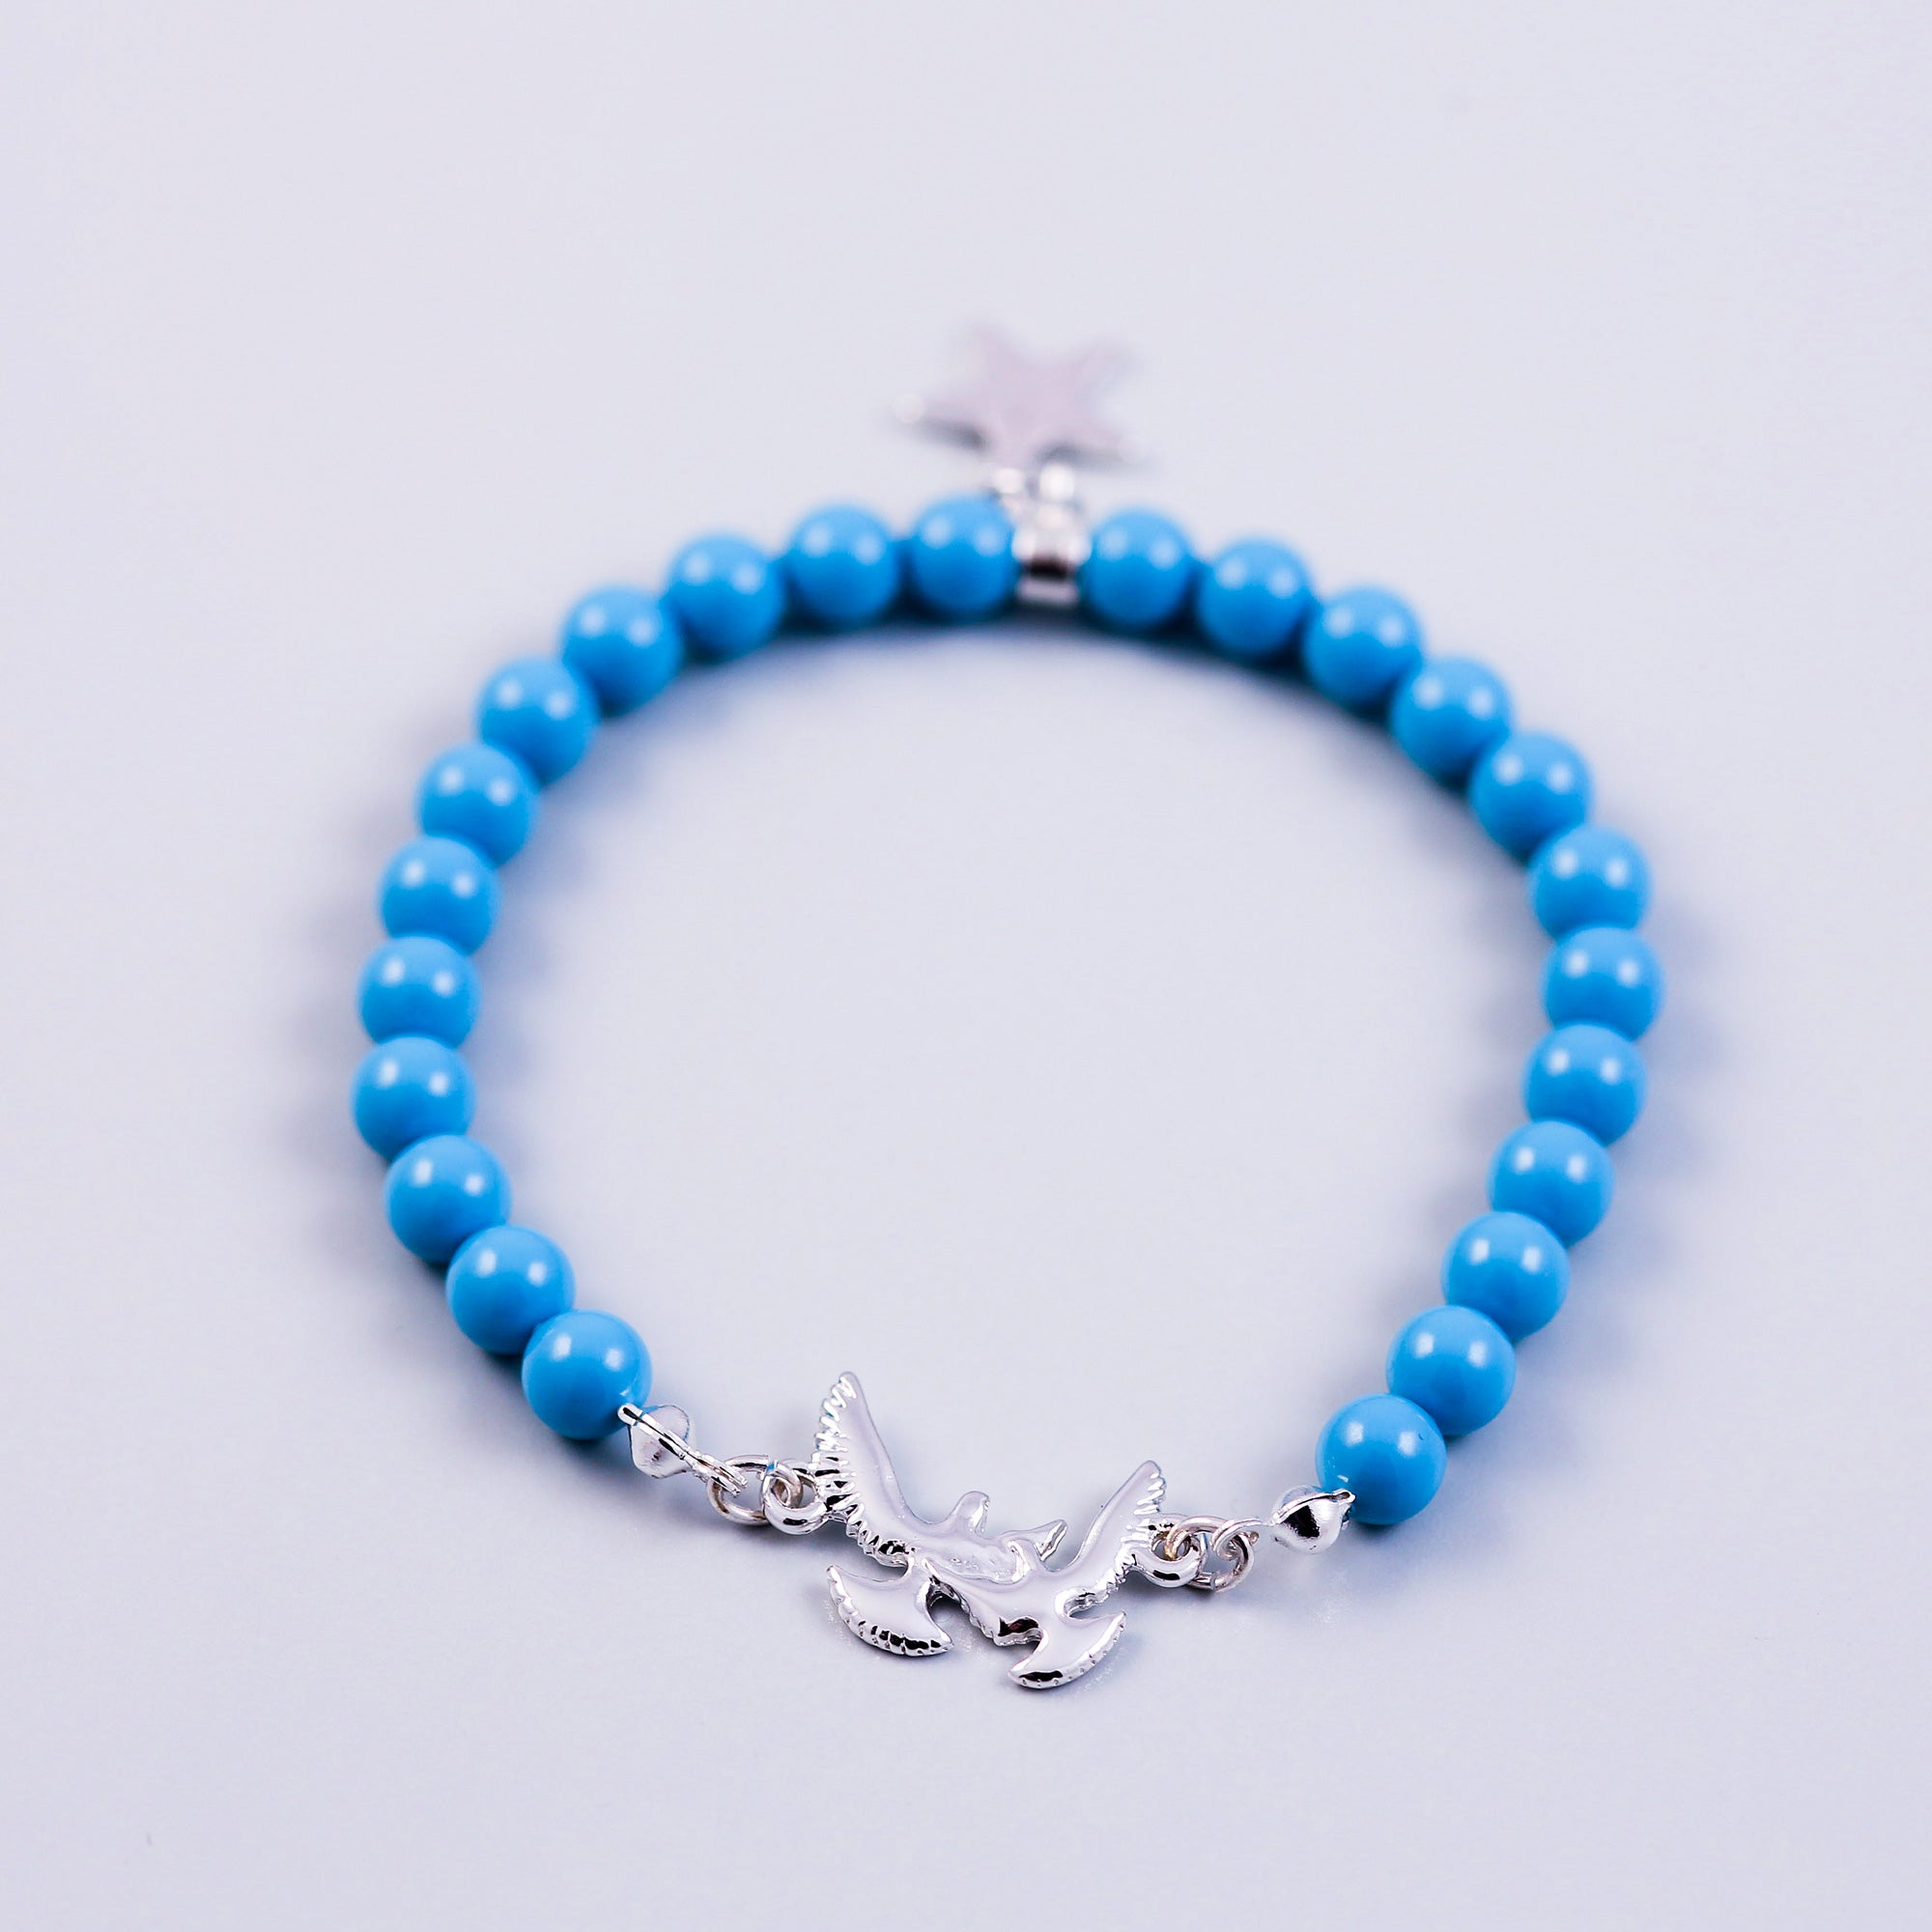 Pearl Bracelet with Bird Detail | Cute Friendship Bracelets | Friendship Jewellery | Silver & Turquoise